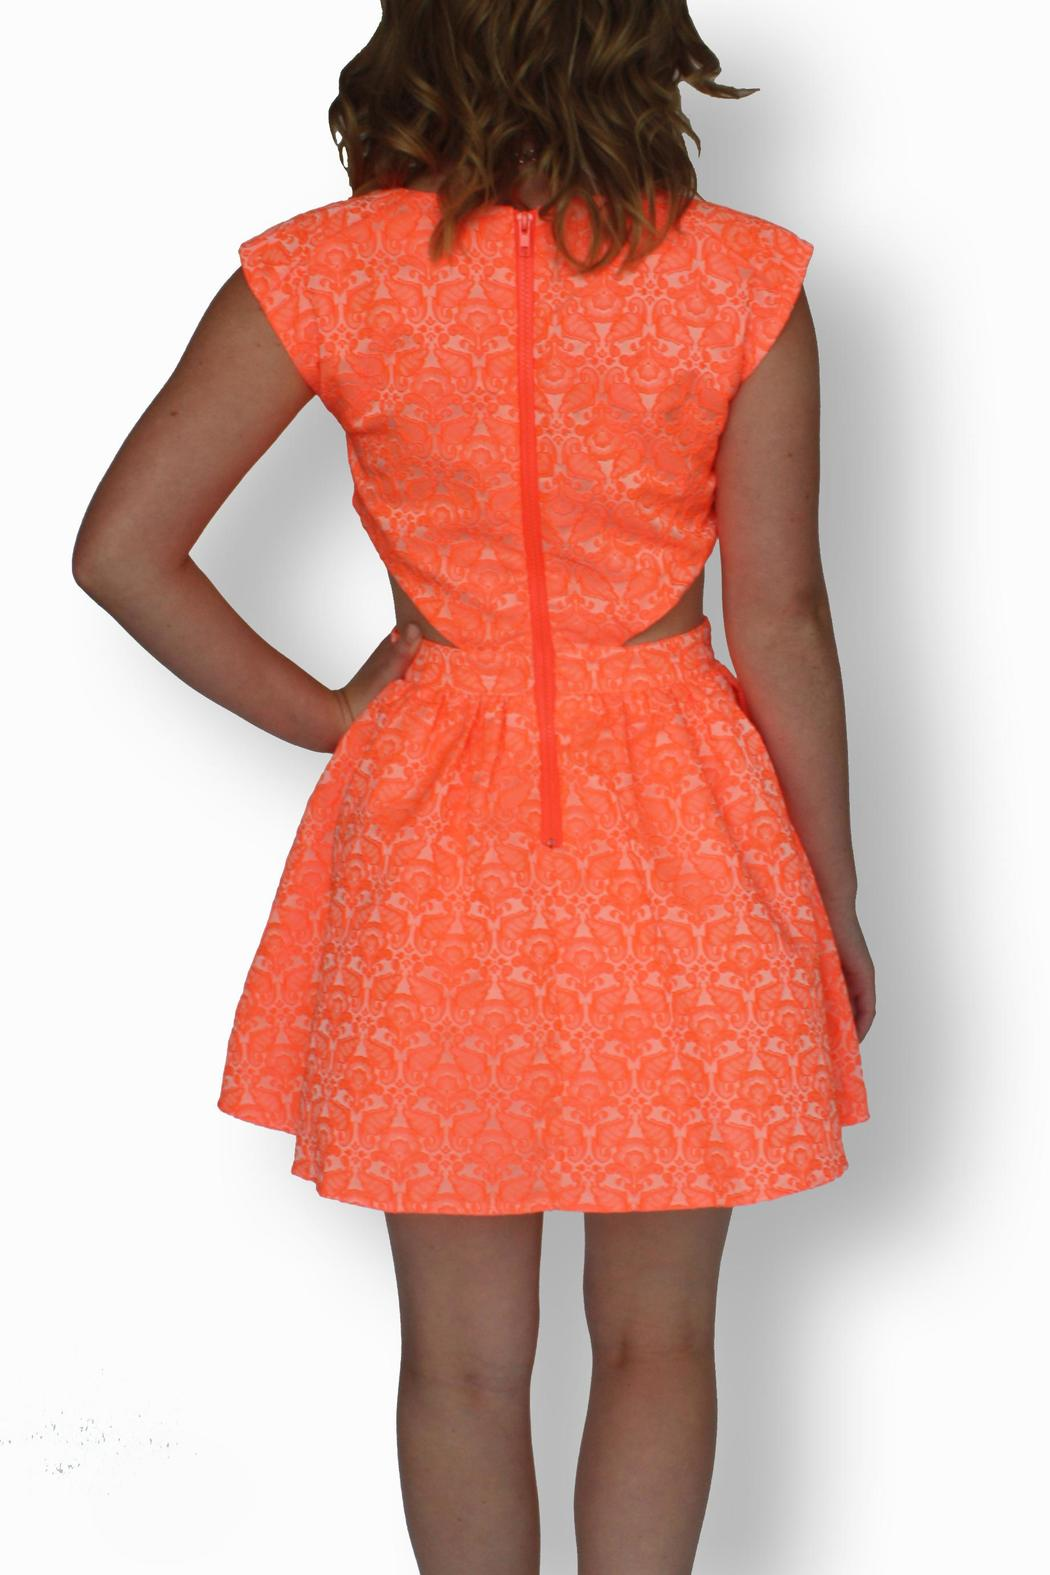 I Heart U Fashion Petunia Cut Out Dress From Indiana By